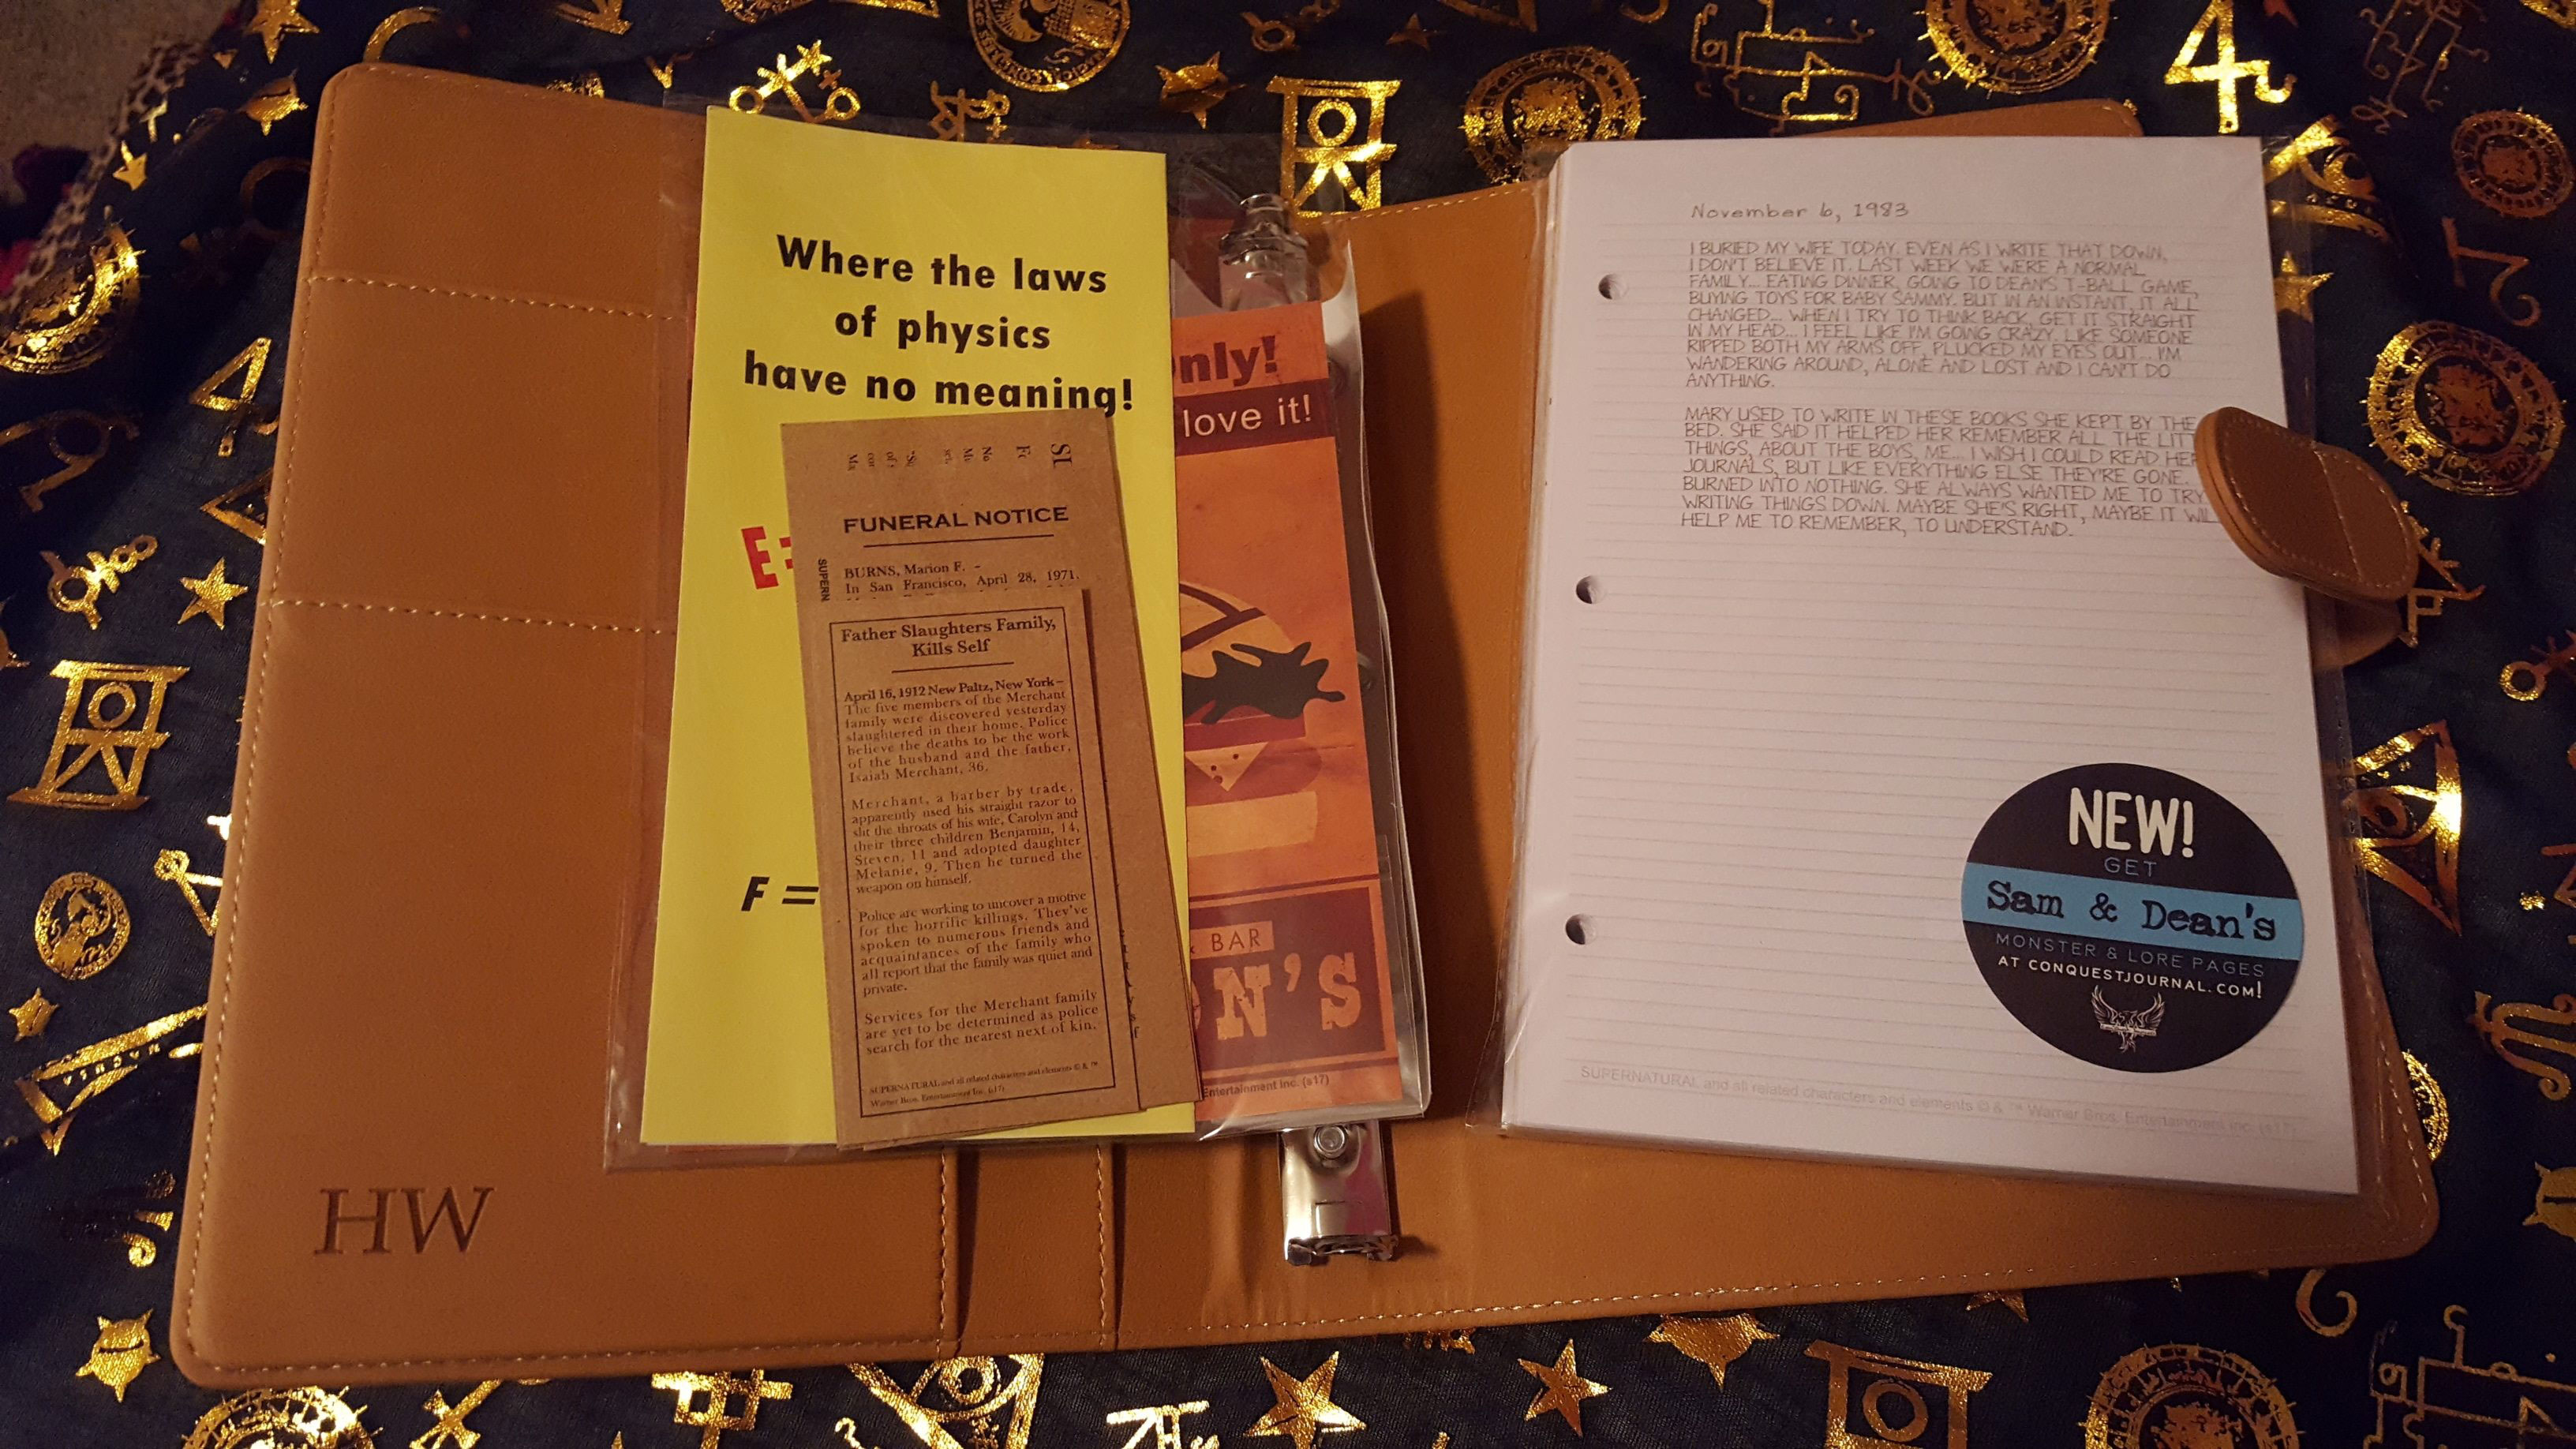 Inside the John Winchester replica journal, with journal entries, newspaper articles, and Mystery Spot and Biggerson's advertisements